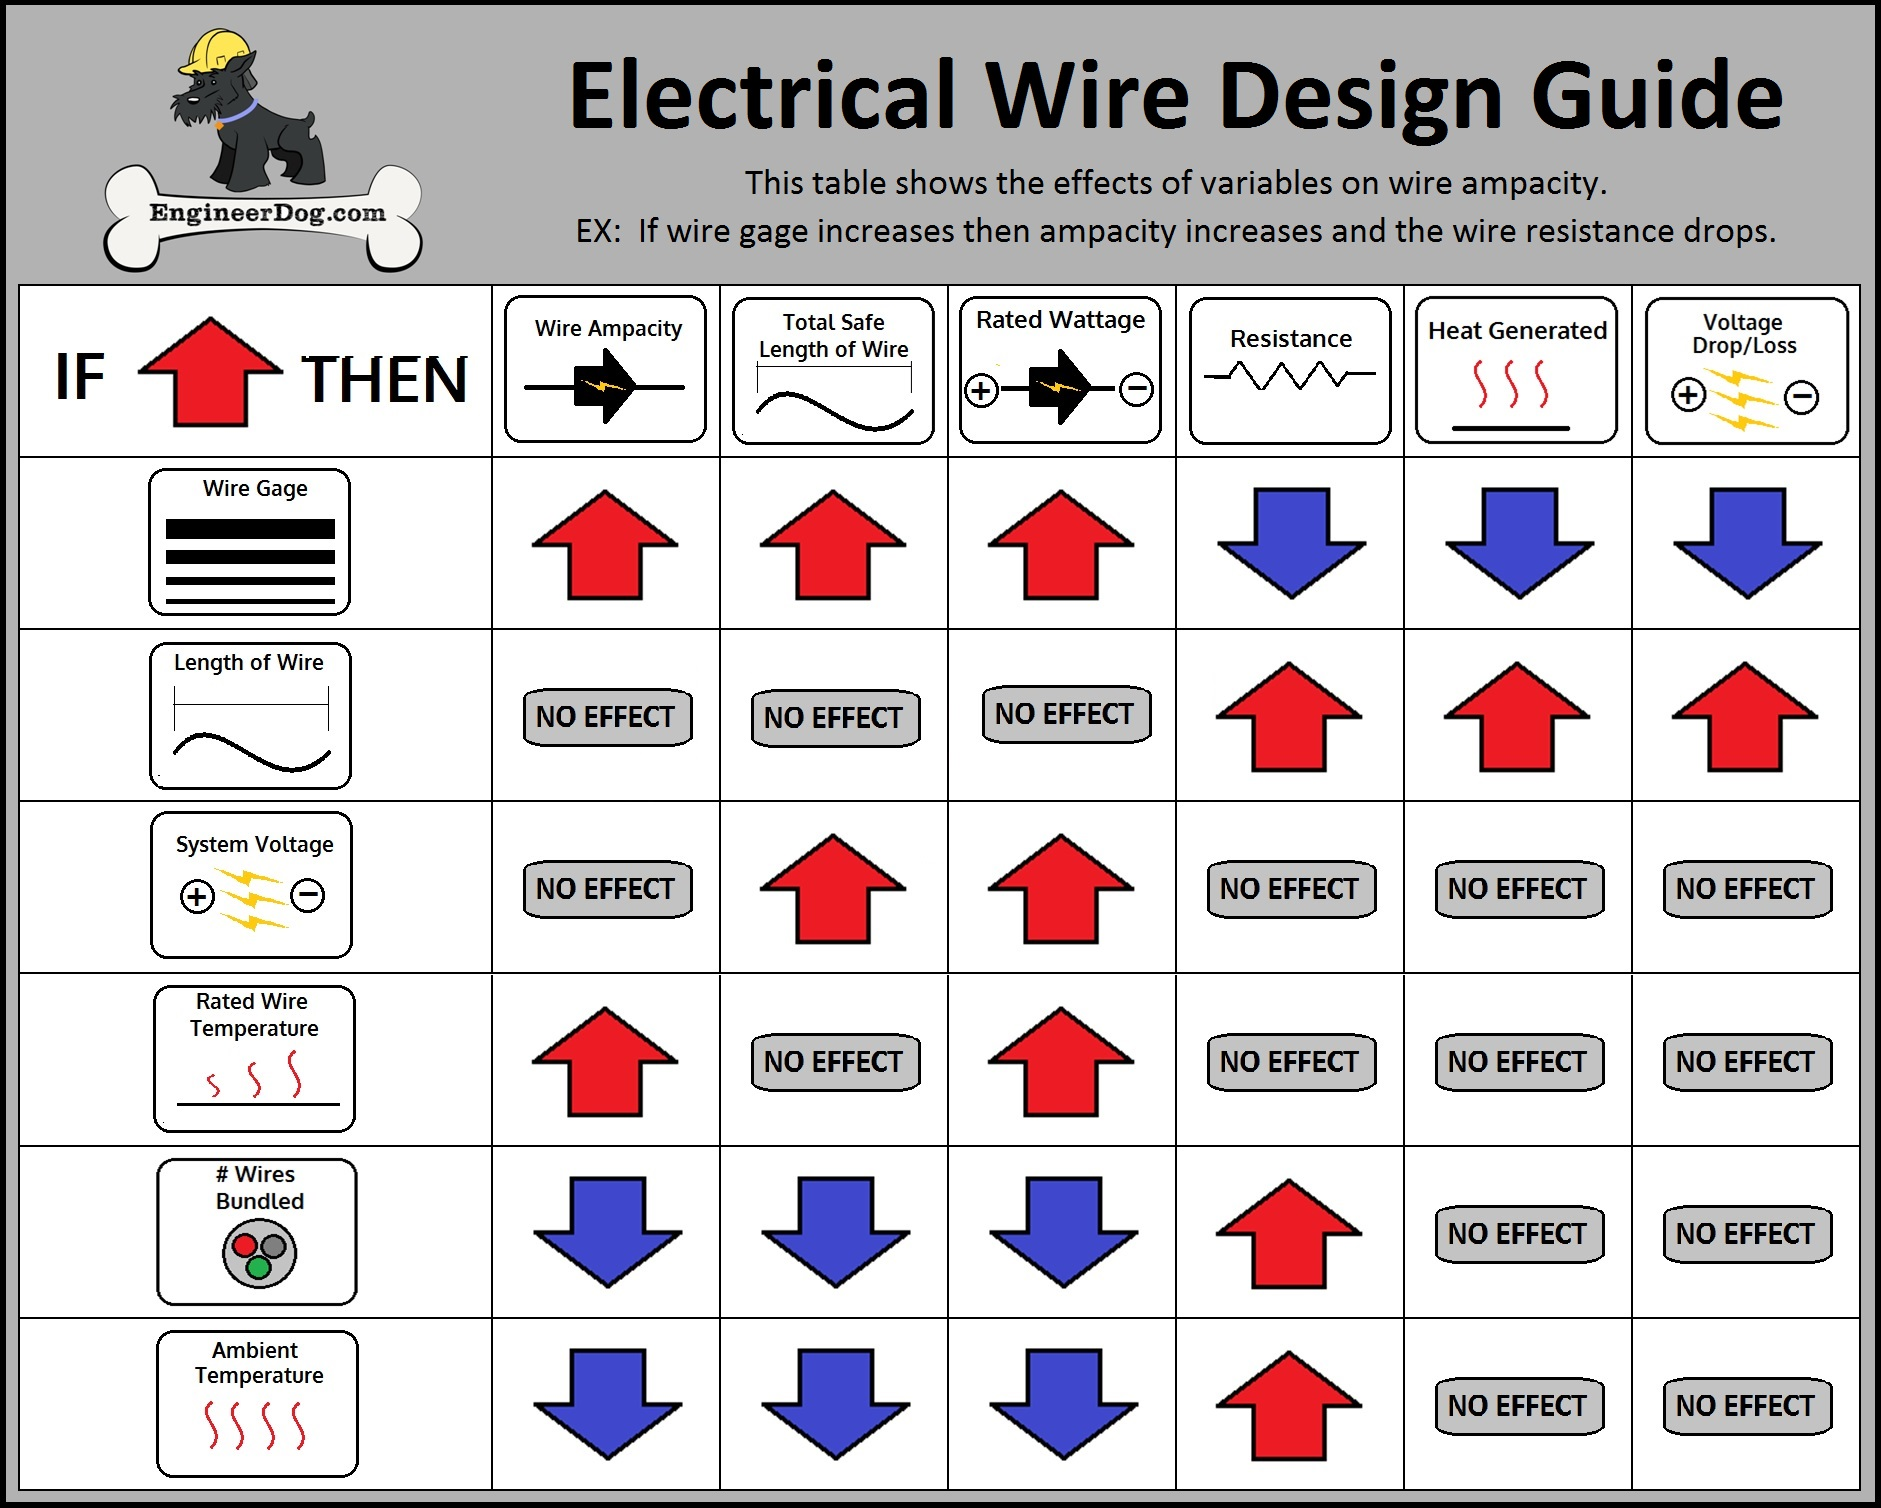 Free electrical wire gauge sizing calculator engineerdog wire sizing guide wire ampacity current carrying capacity greentooth Images